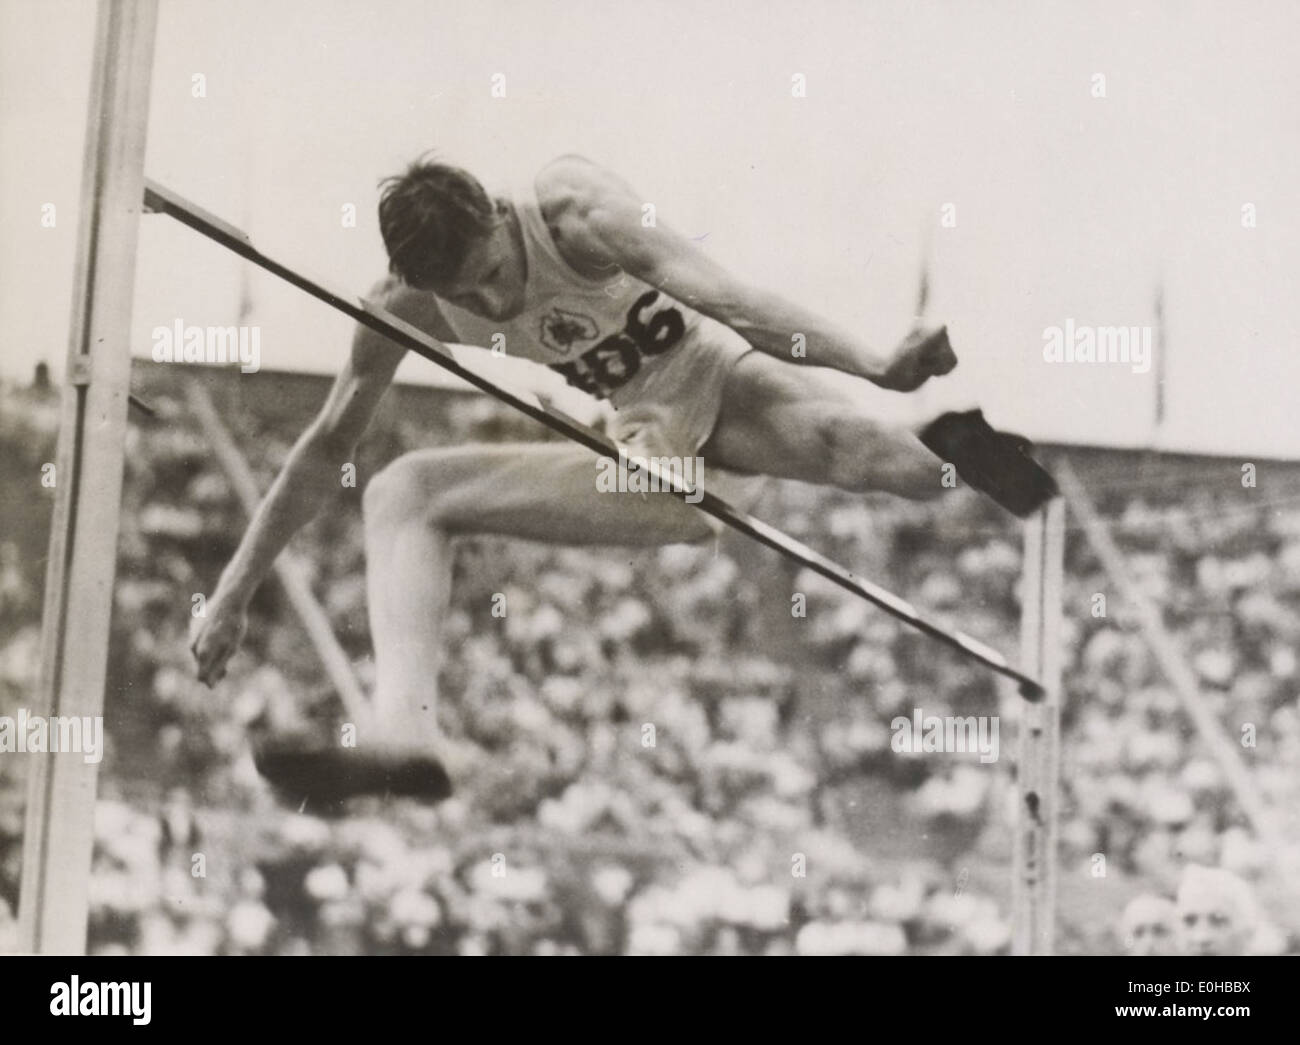 Athlete John Winter winning the high jump event at the London Olympic Games, August 1948. - Stock Image